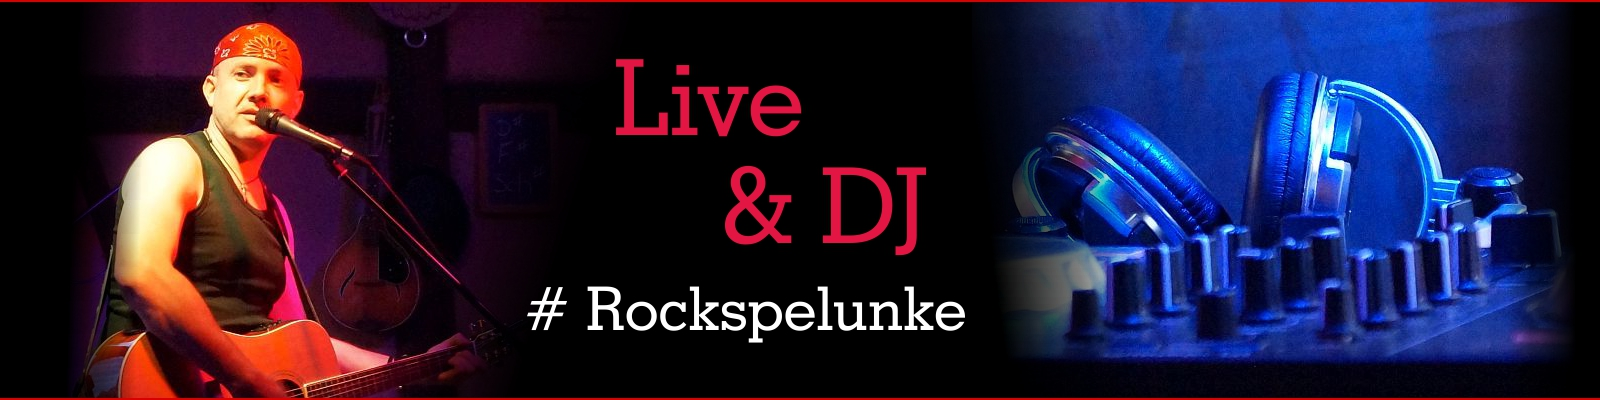 rockparties rockspelunke livemusik rock DJ